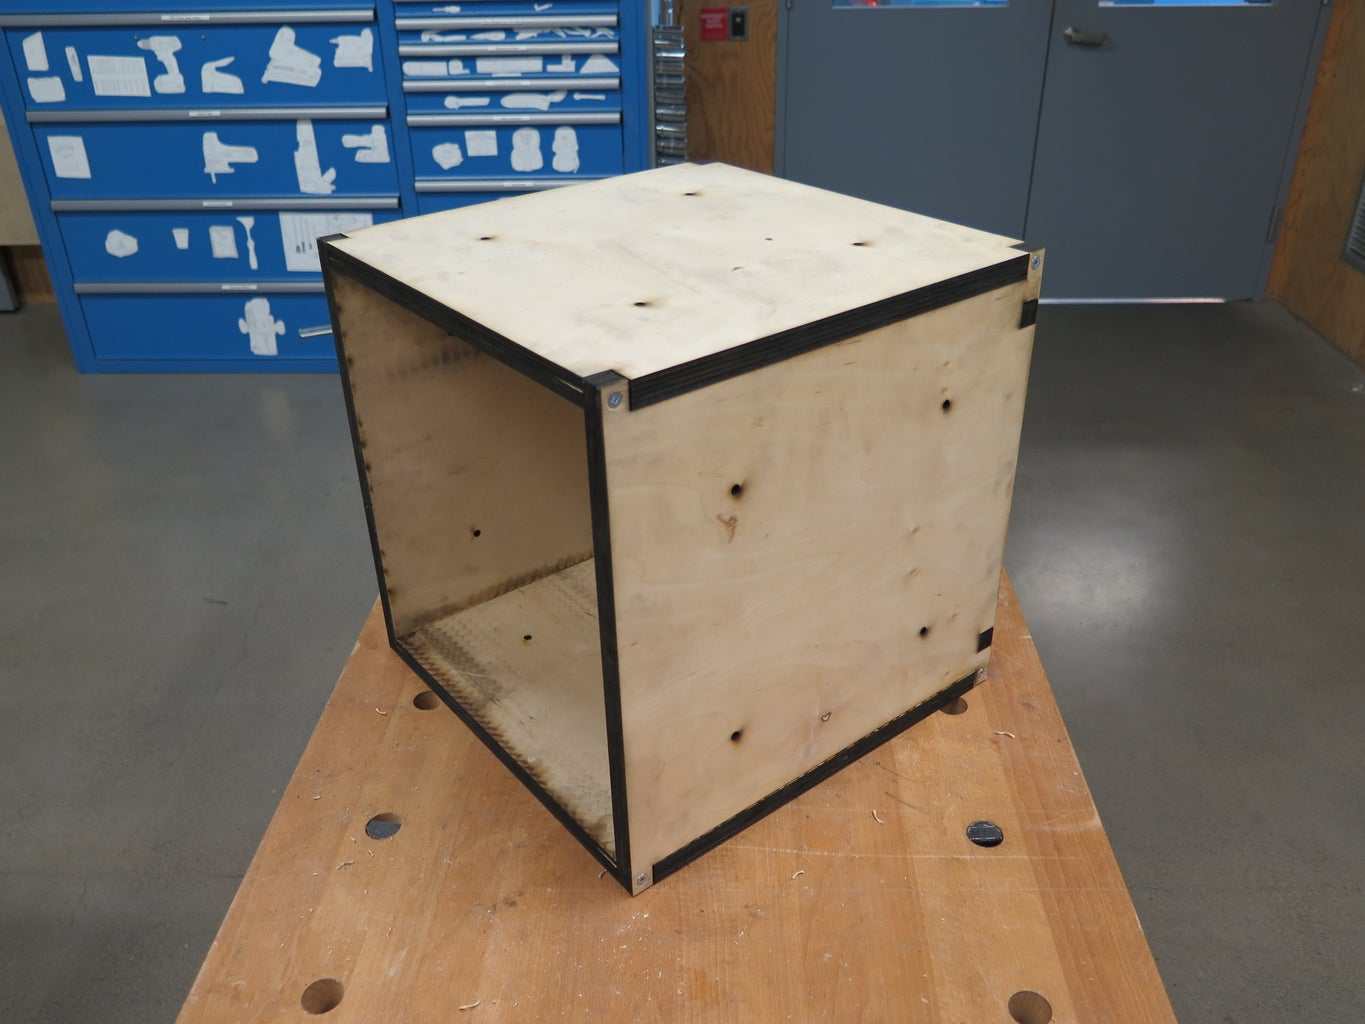 Assemble and Connect the Boxes